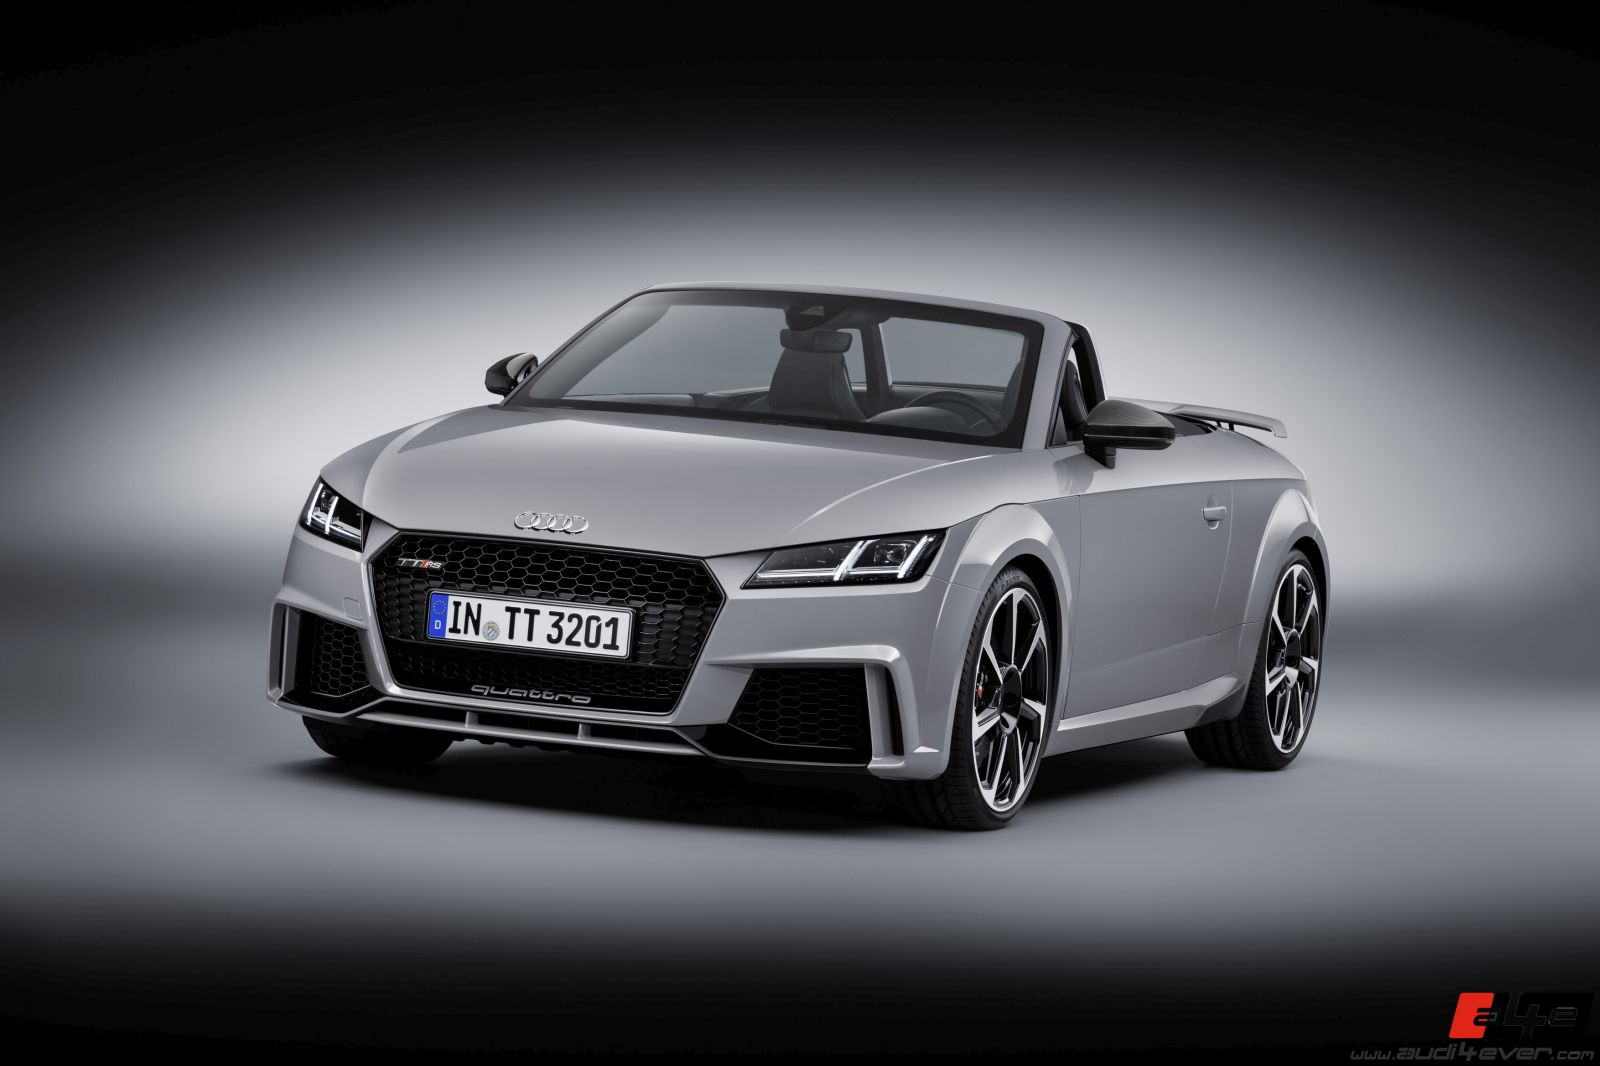 a4e gallery audi tt tts ttrs coupe roadster audi tt rs roaster 2016. Black Bedroom Furniture Sets. Home Design Ideas